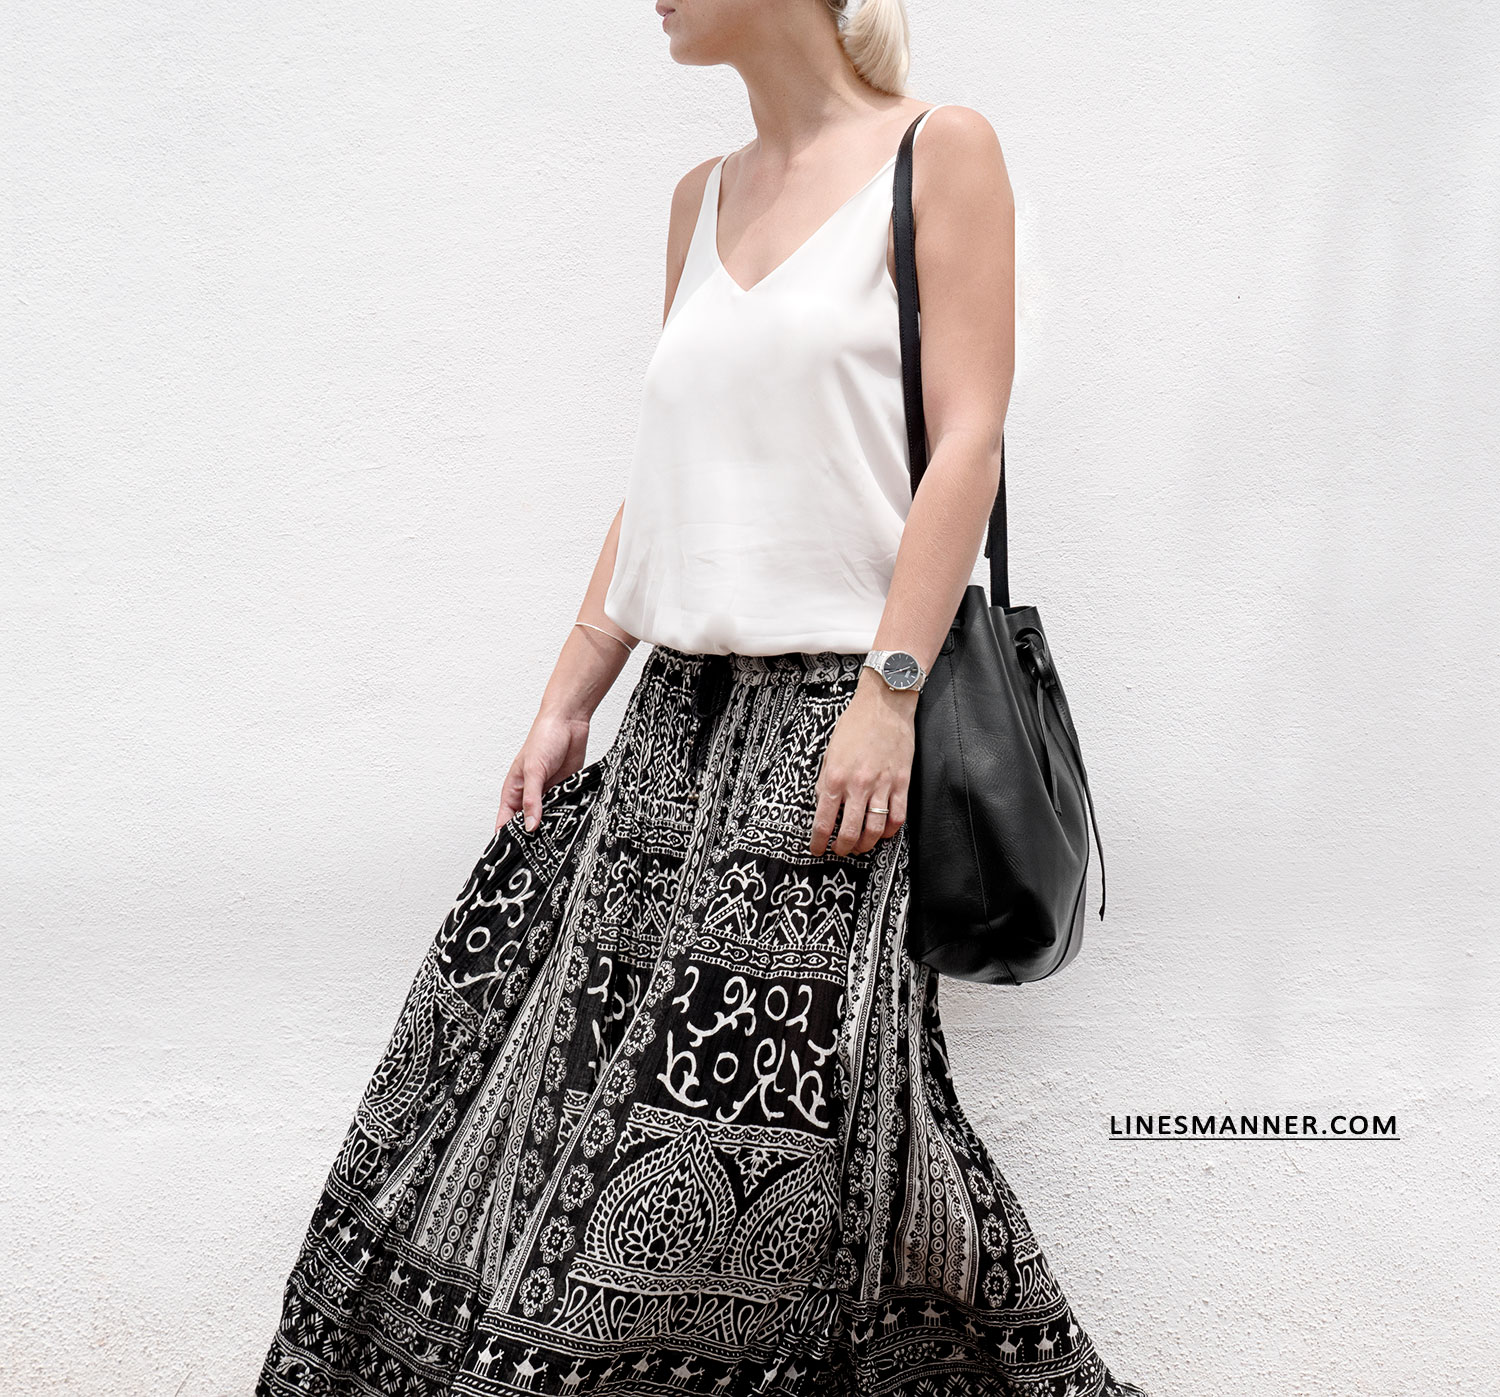 Lines-Manner-Tribal-Monochrome-Airy-Prints-Printed-Black_and_White-MVN-Details-Modern-8